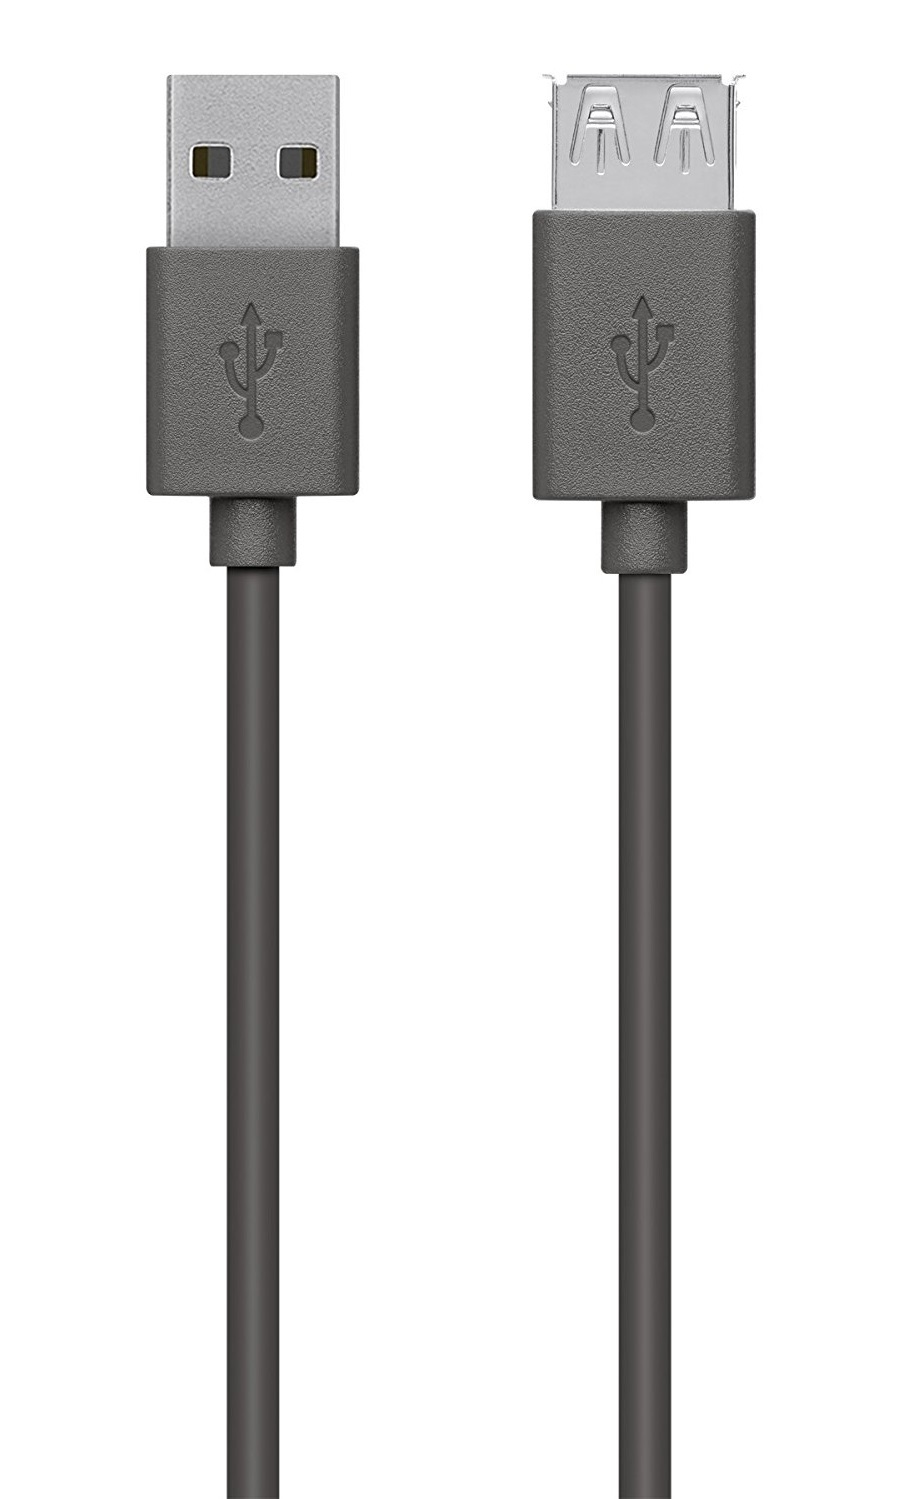 Belkin: USB 2.0 Extension Cable, A to A - 3m (Grey) image